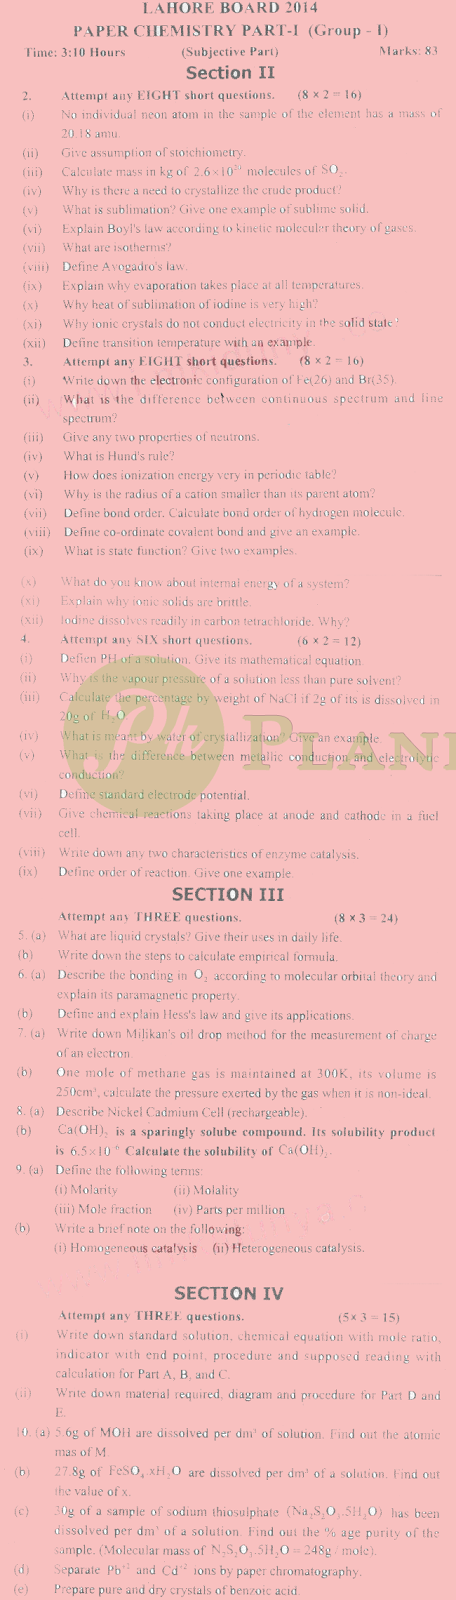 Past Papers of Intermediate Part 1 Chemistry Lahore Board 2014